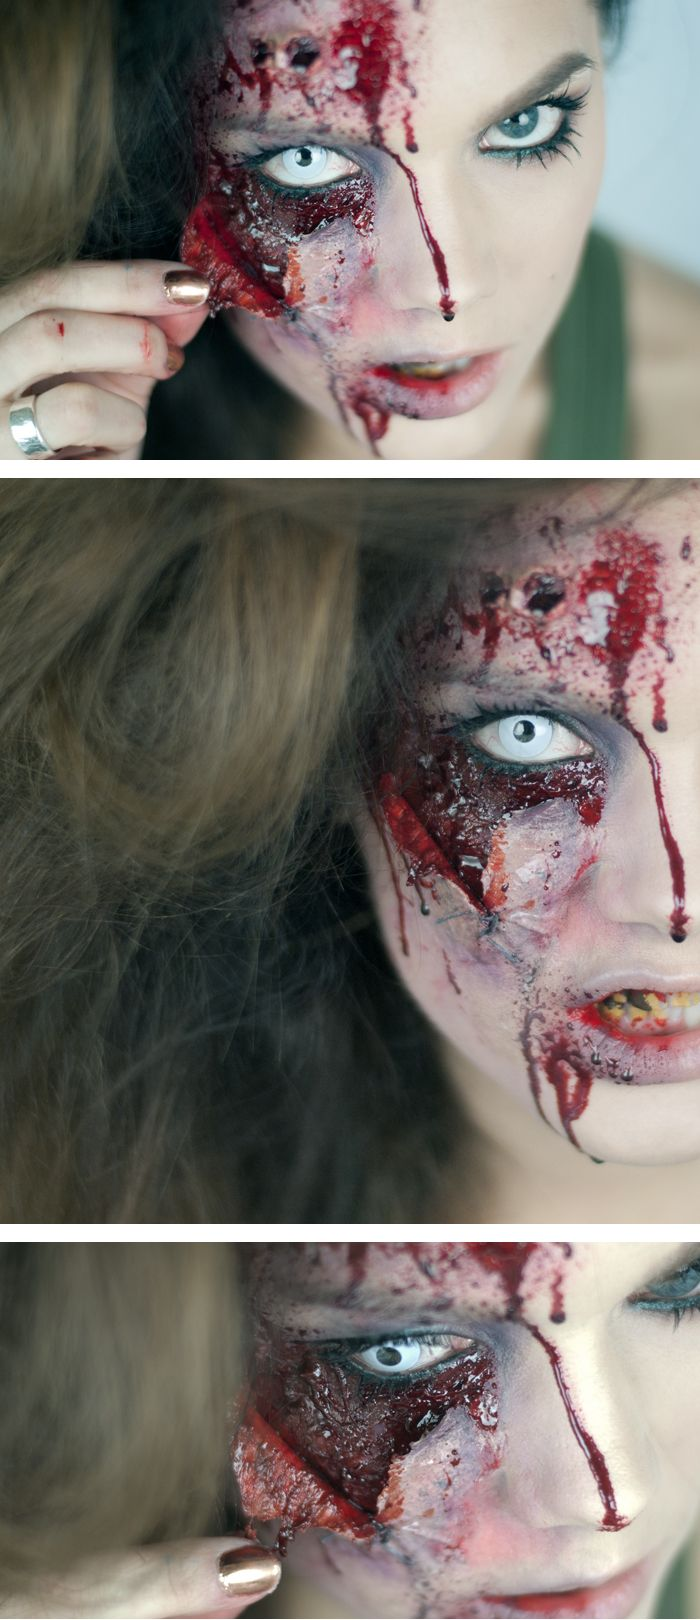 Love this pealed skin effect. To begin with it almost appears as though the model has been injured or in an accident then in the second image it appears as though she may be a daemon or vampire. This is a look i will be creating within my group image of a zombie apocalypse.: